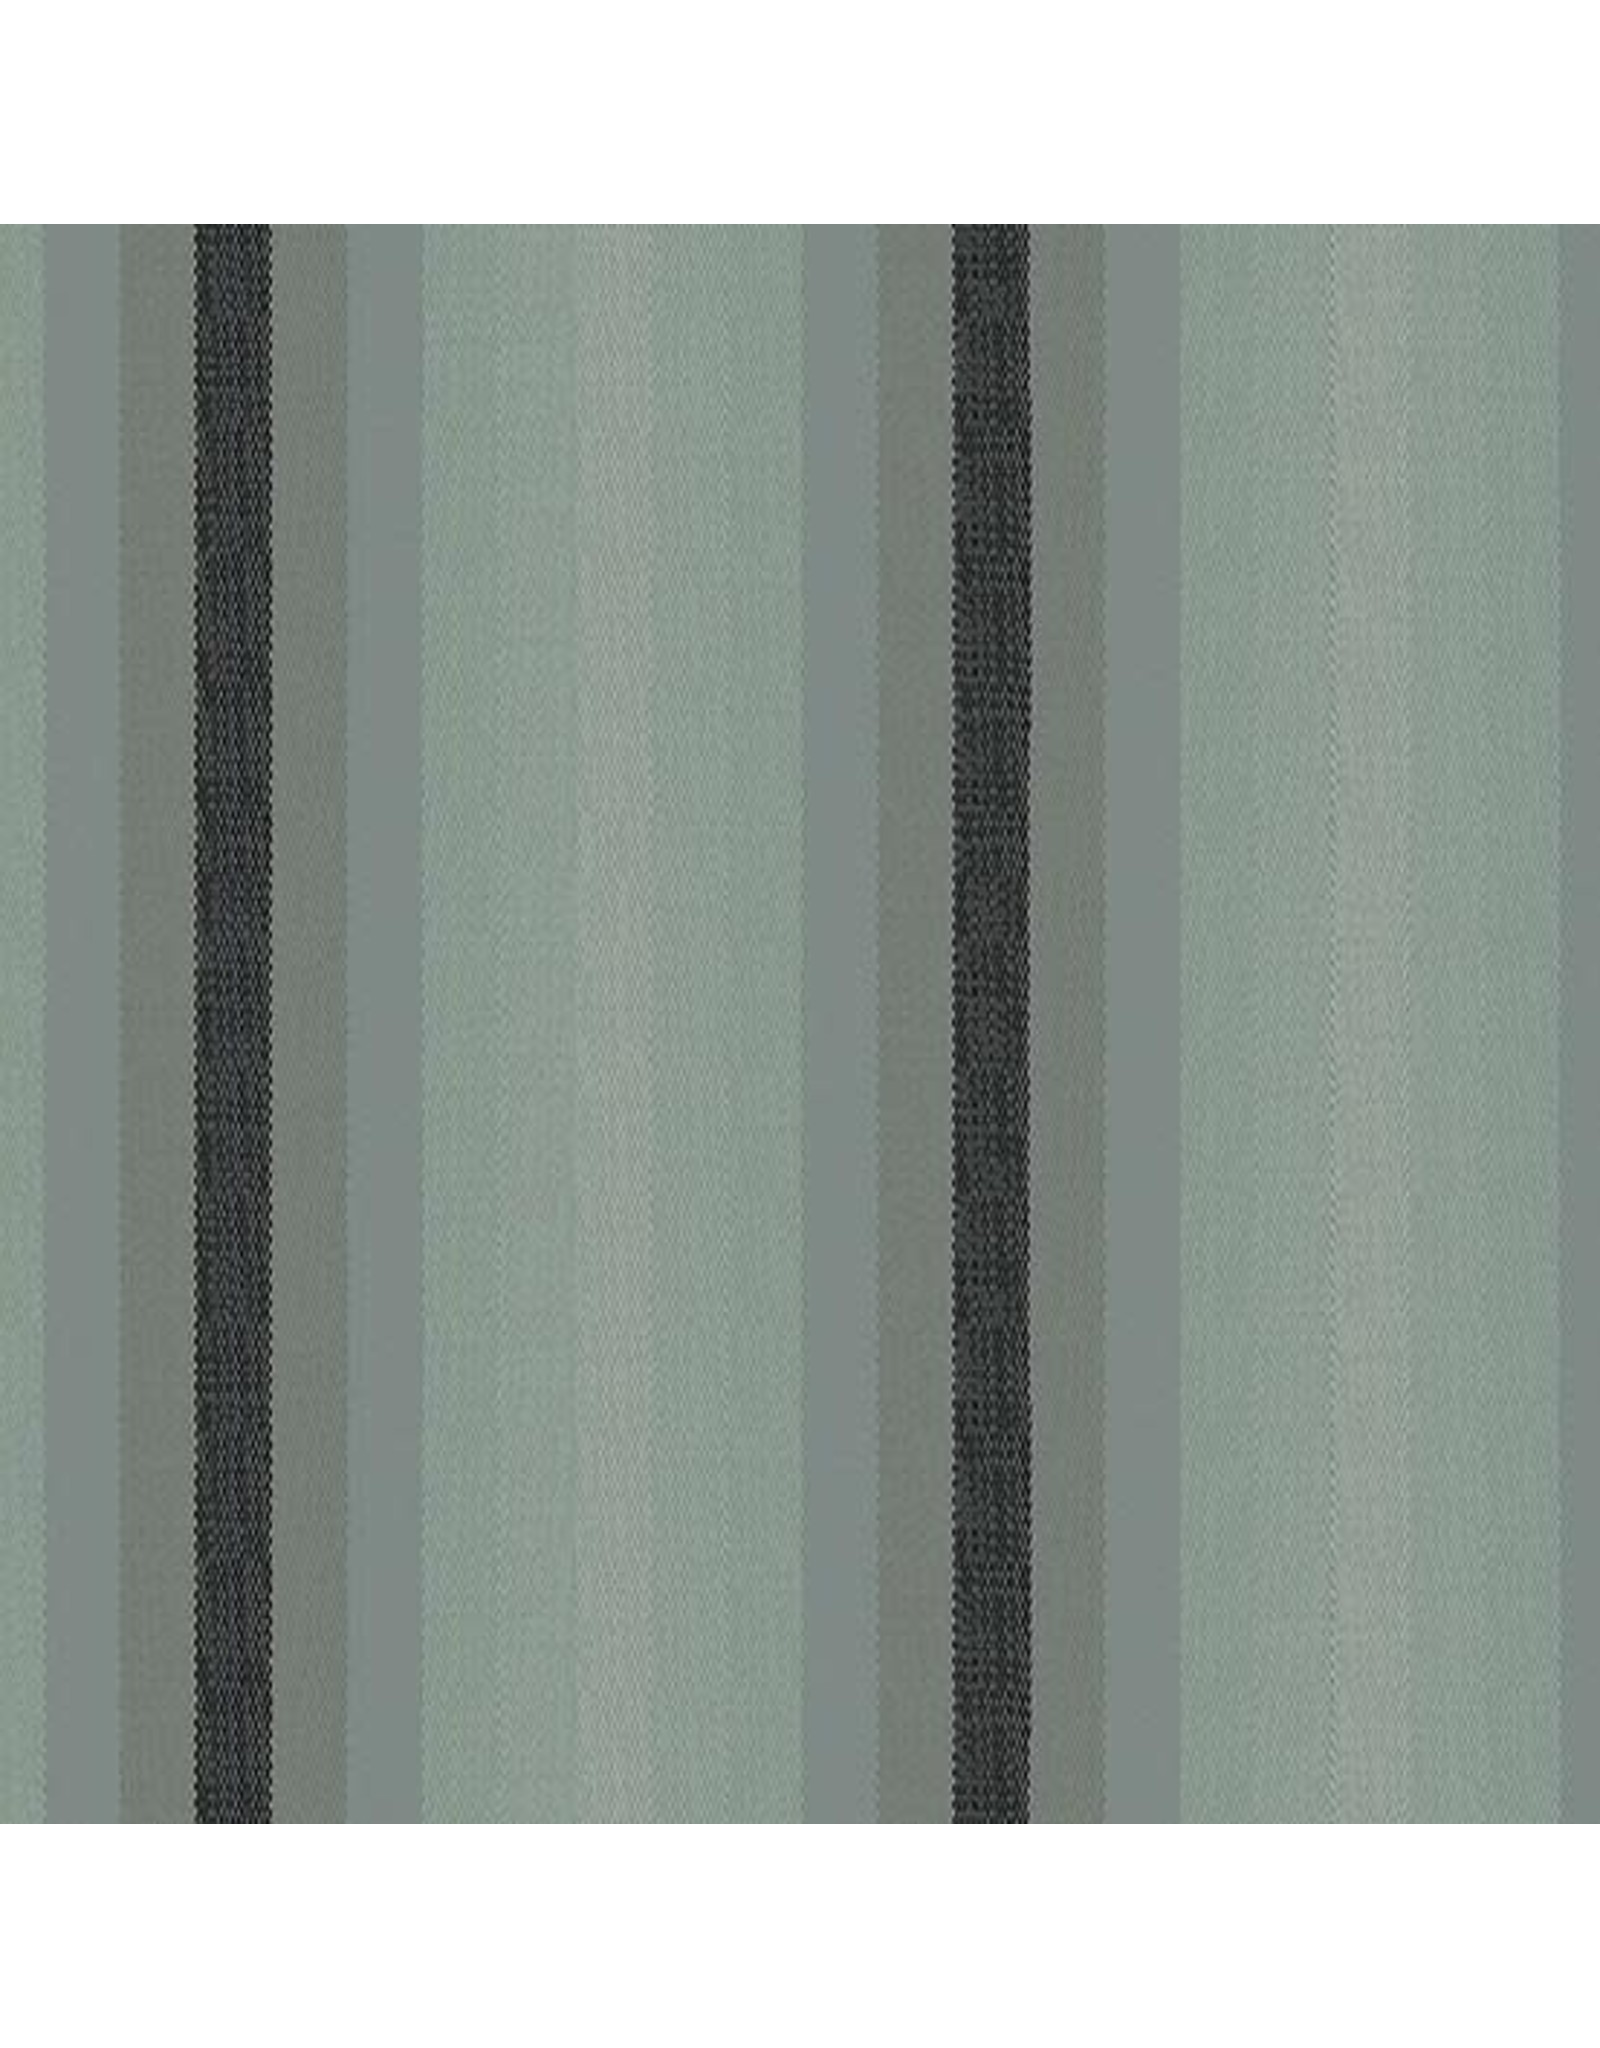 Alison Glass Kaleidoscope Stripes and Plaids, Stripes in Charcoal, Fabric Half-Yards WV-9540